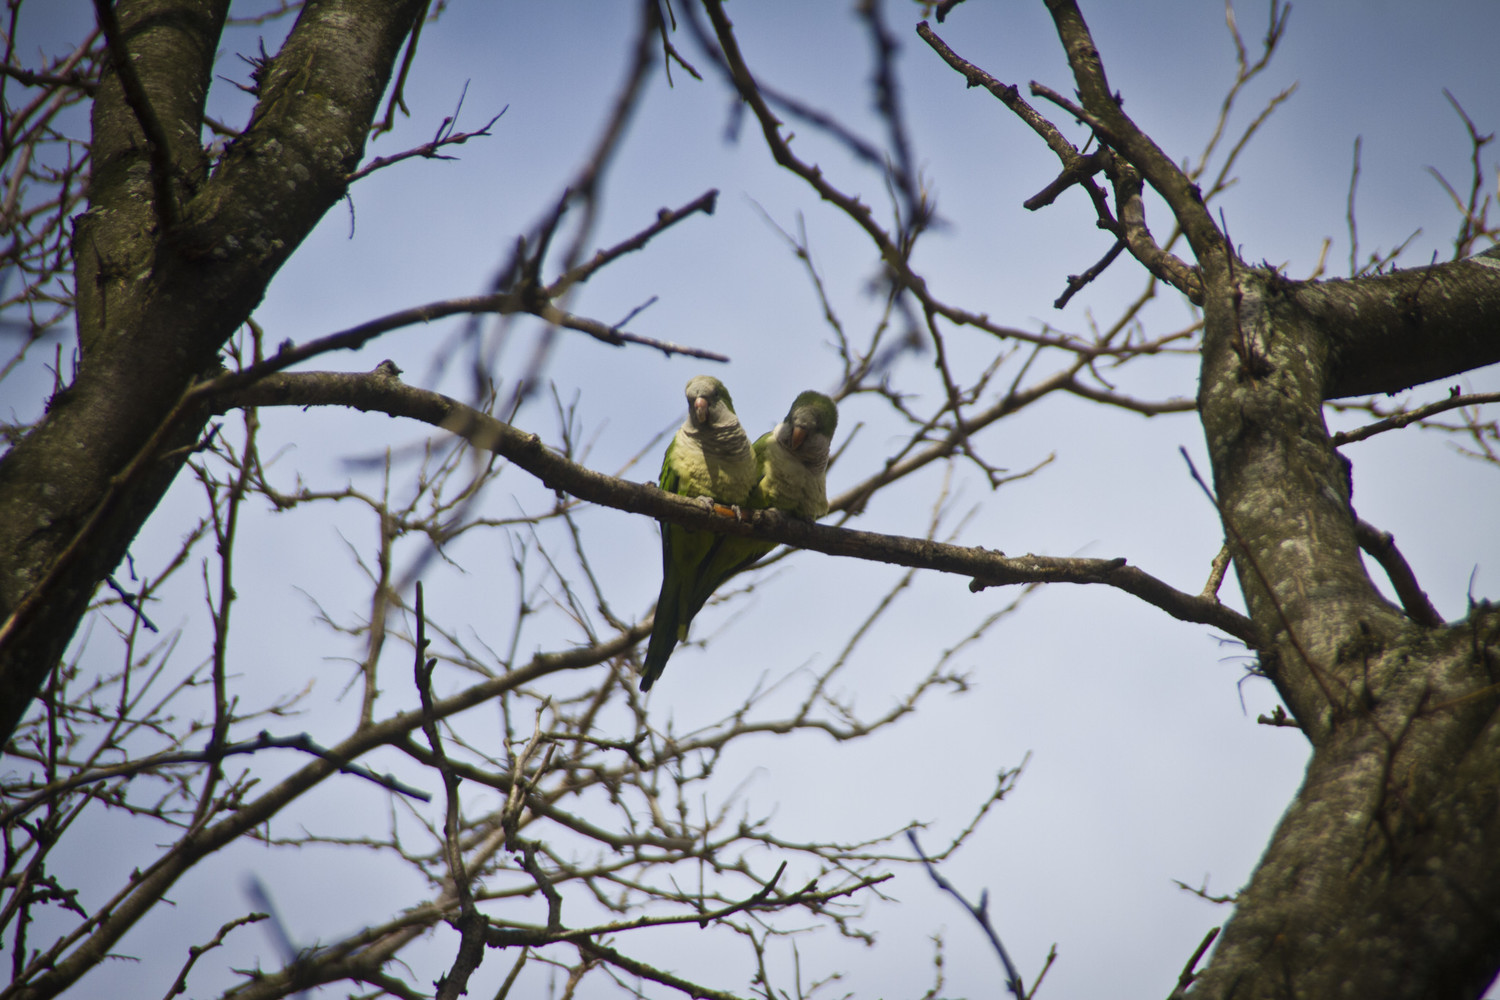 Monk parakeets observed in their adoptative habitat of Flatbush, Brooklyn.